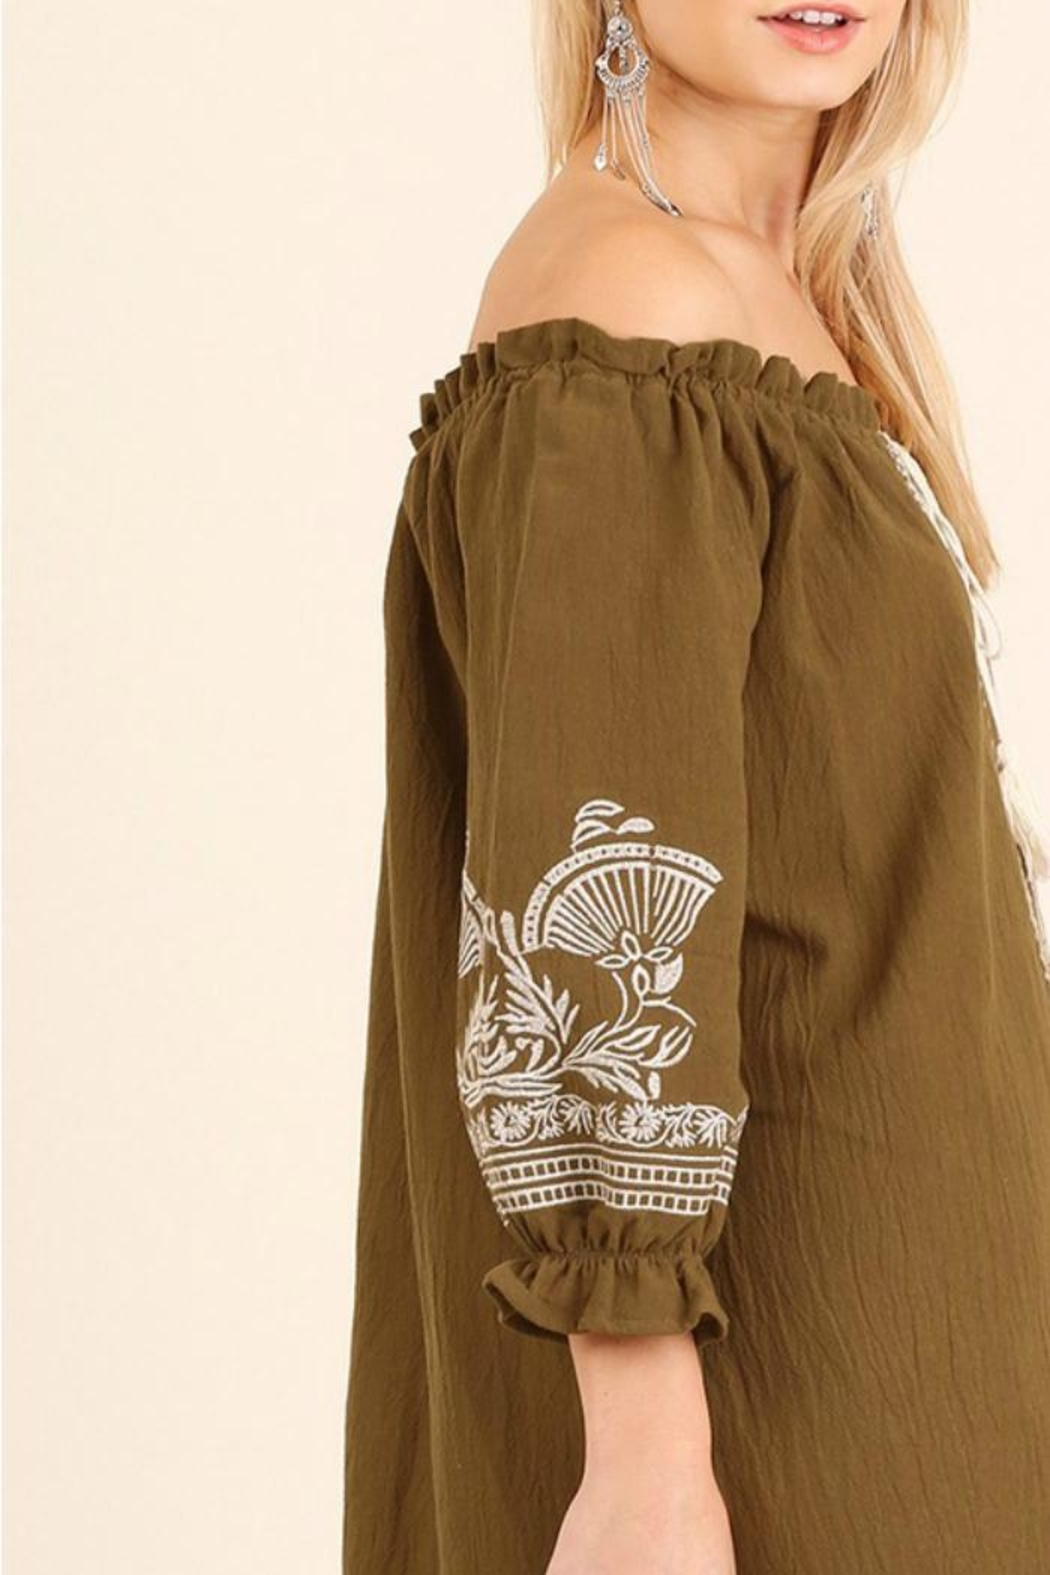 Umgee USA Tan Embroidered Dress - Back Cropped Image